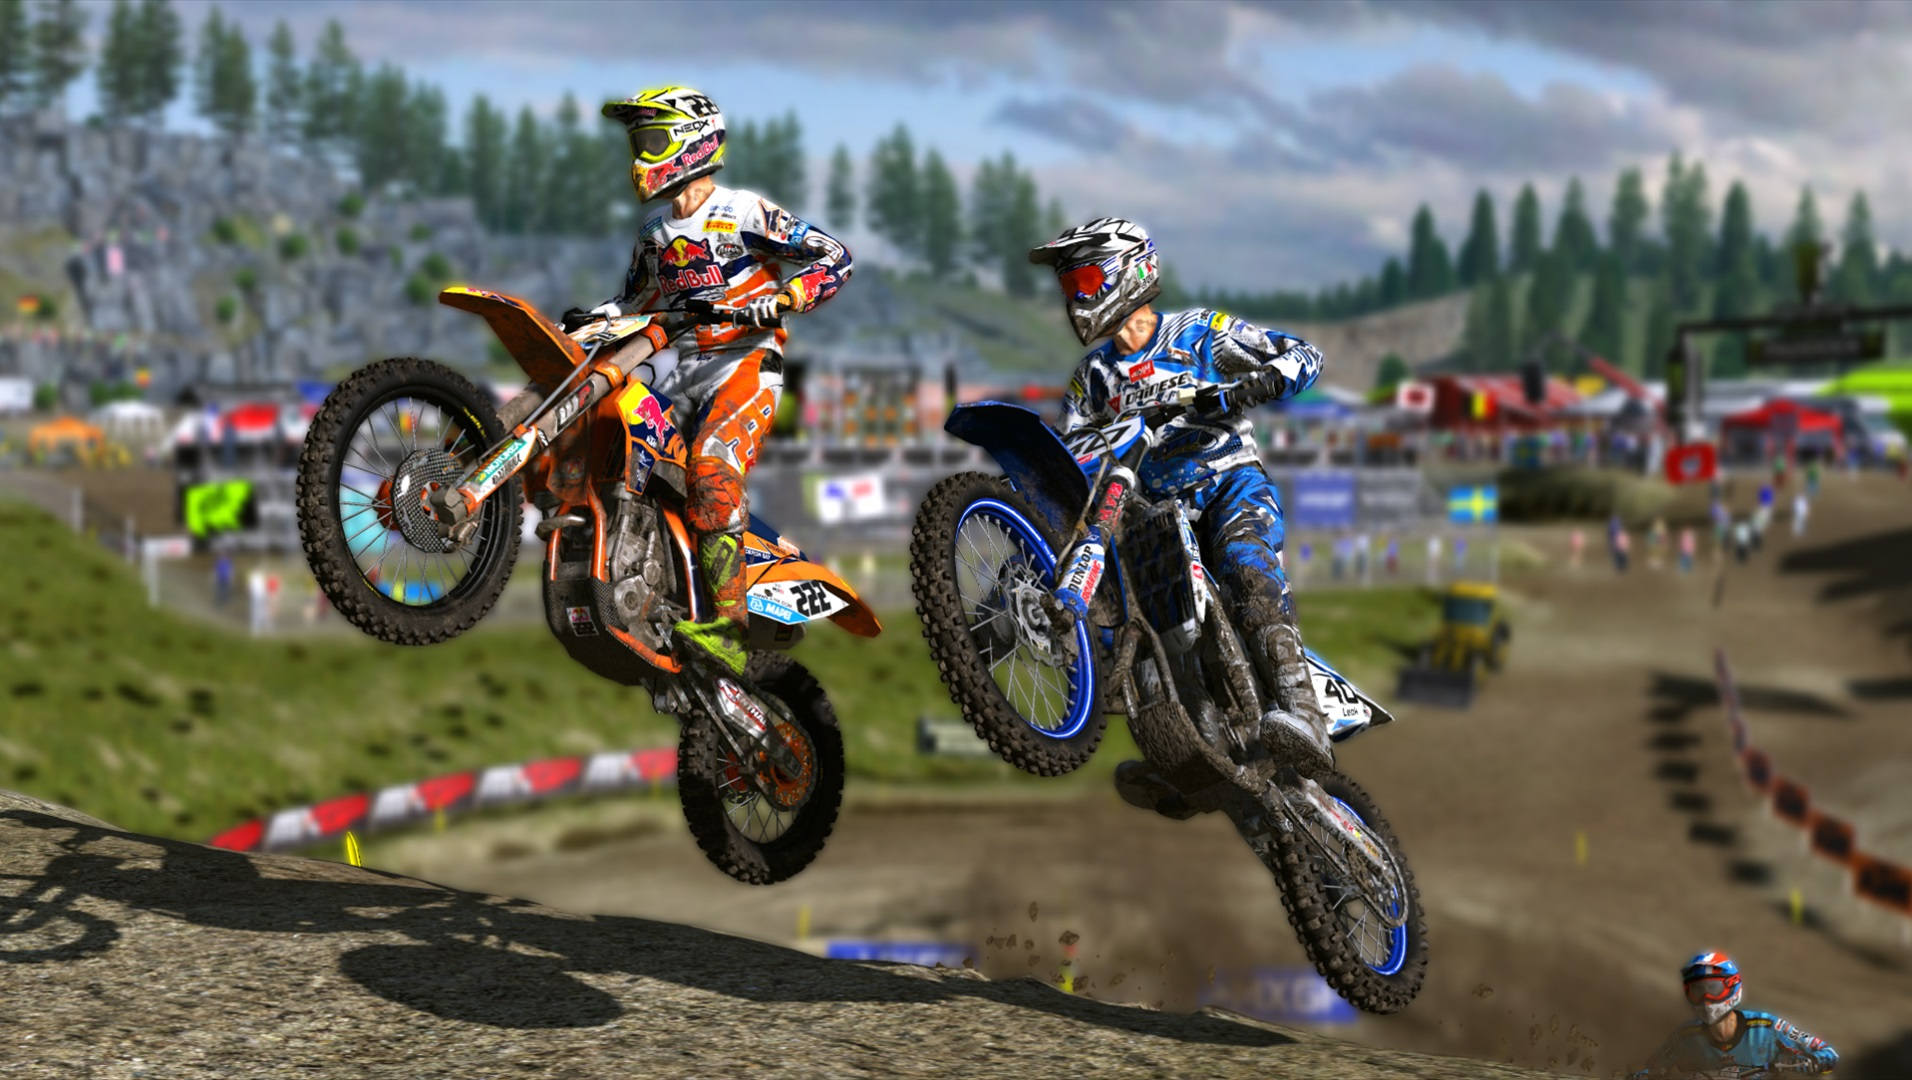 Mxgp 14 Xbox One Image Information Mx Gp 2 Cover English Sur Pc Playsta